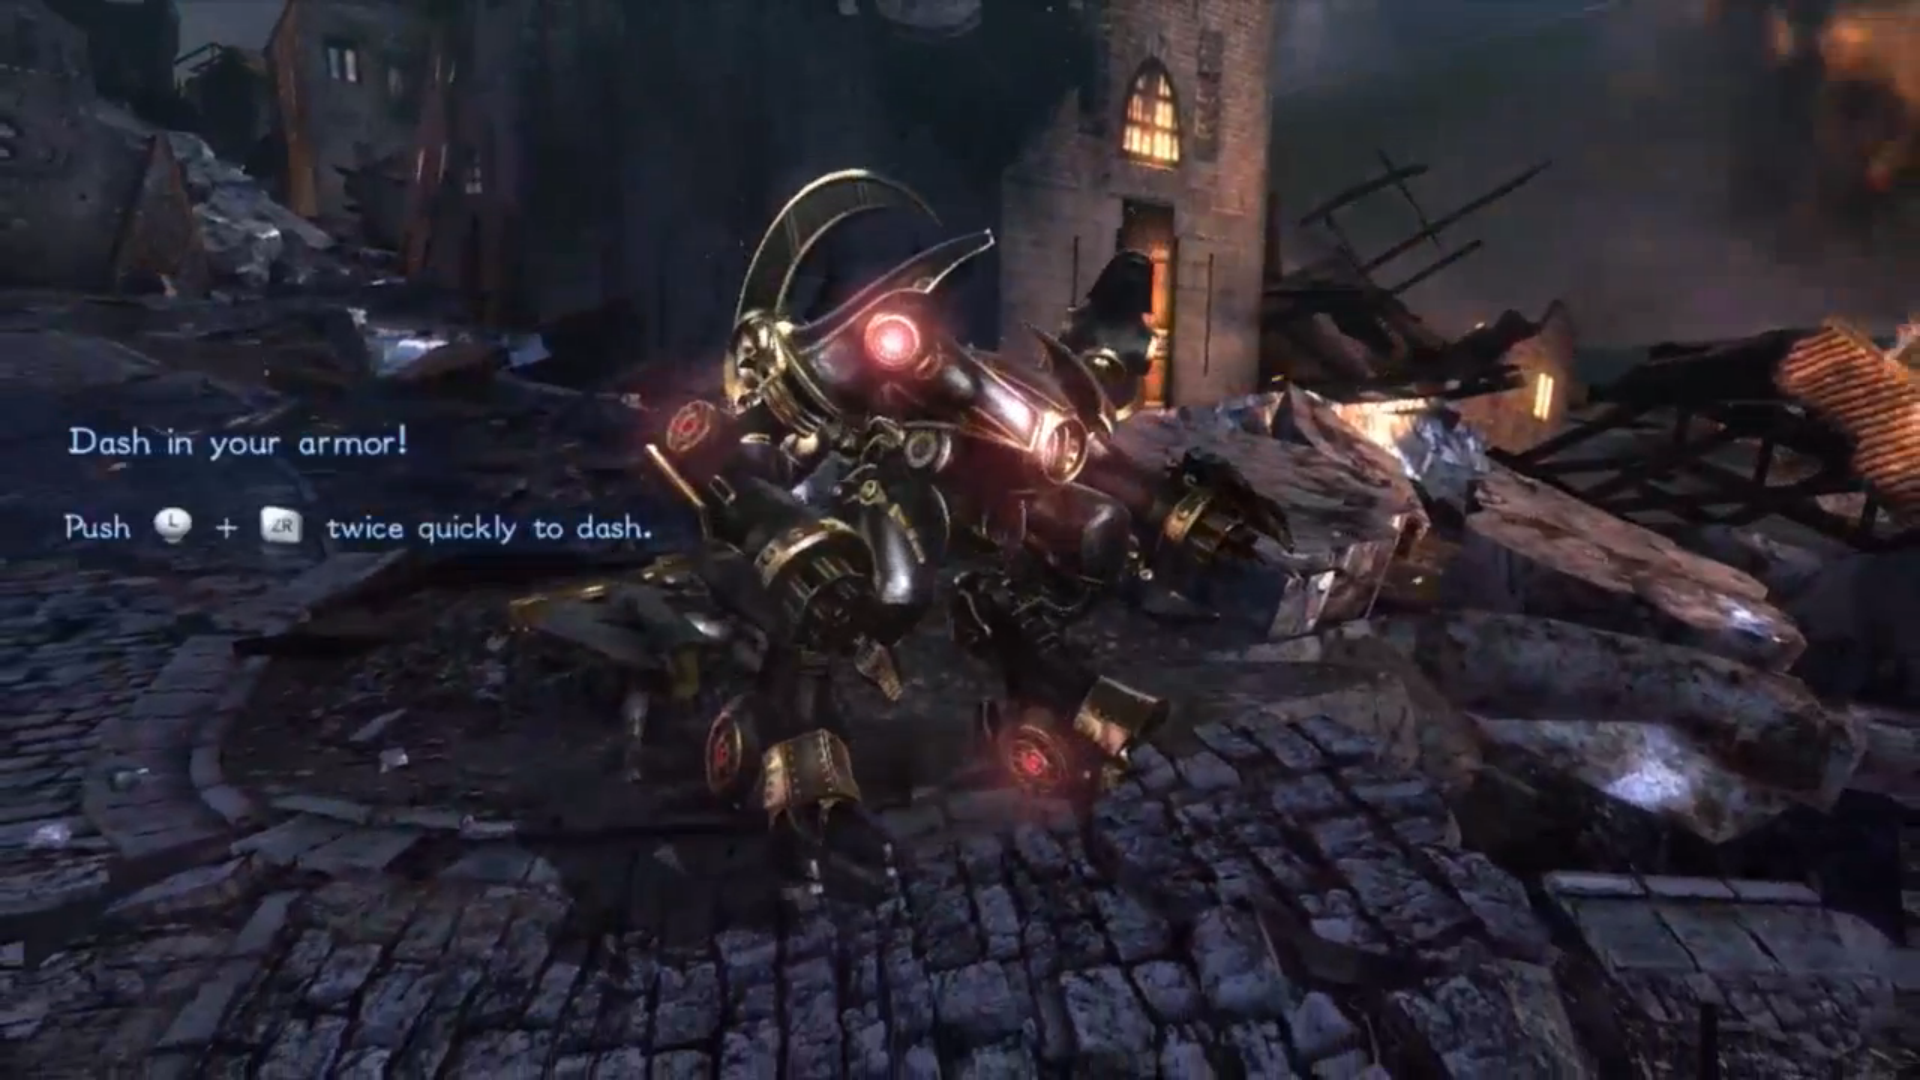 E3 2014: Bayonetta 2 Mech Armor Announced (Video)